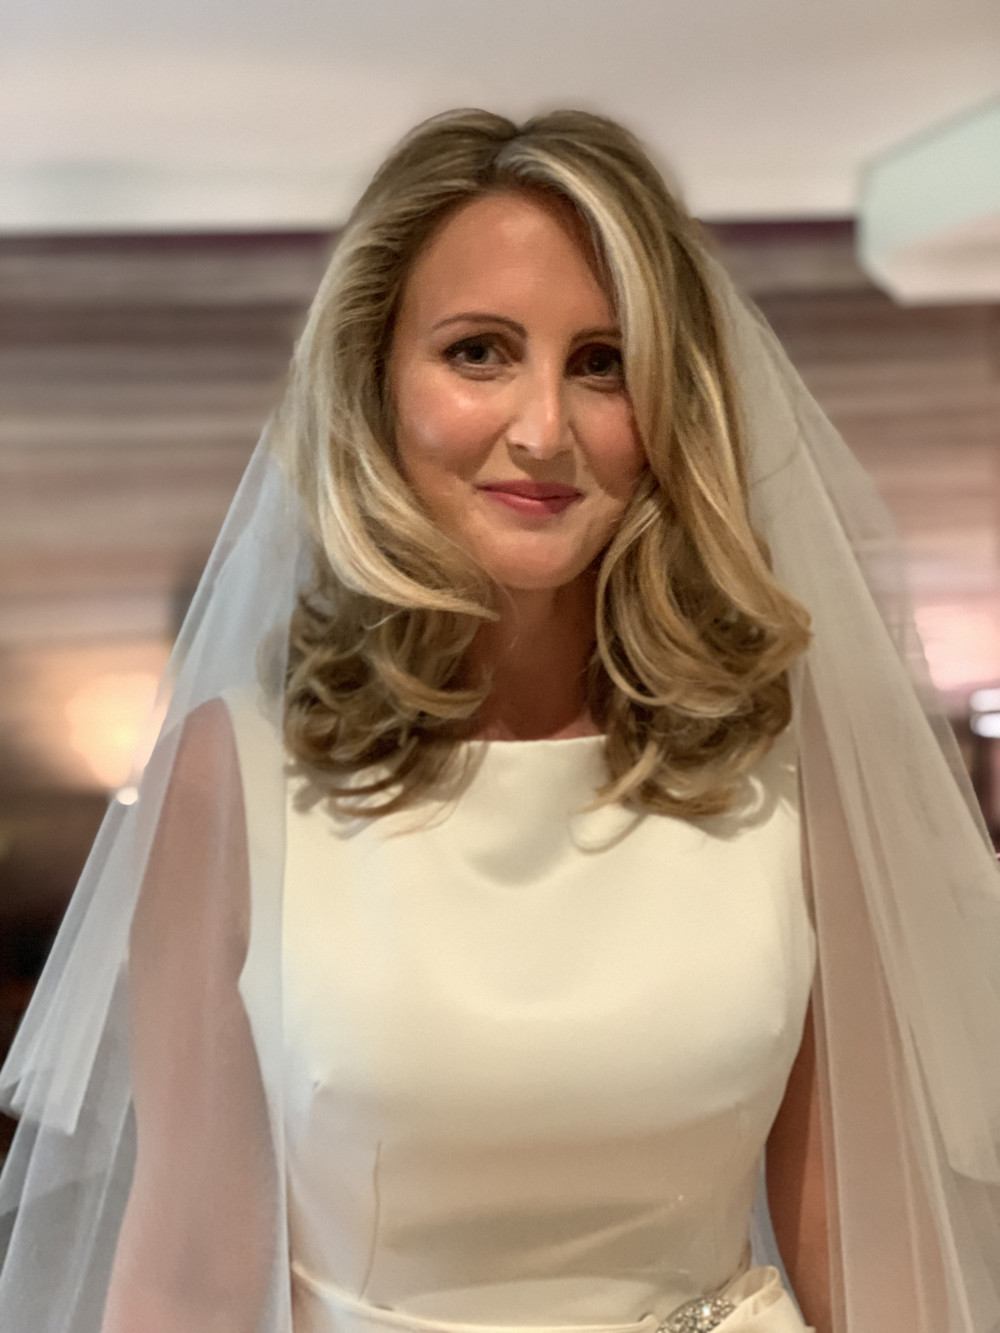 2019 Bride  This beauty was looking for a glamours bouncy blow dry for her special day. - Make Me Bridal Artist: Cheveux cimone. #glamorous #blonde #bridalhair #rollers #hairdown #bouncyblowdry